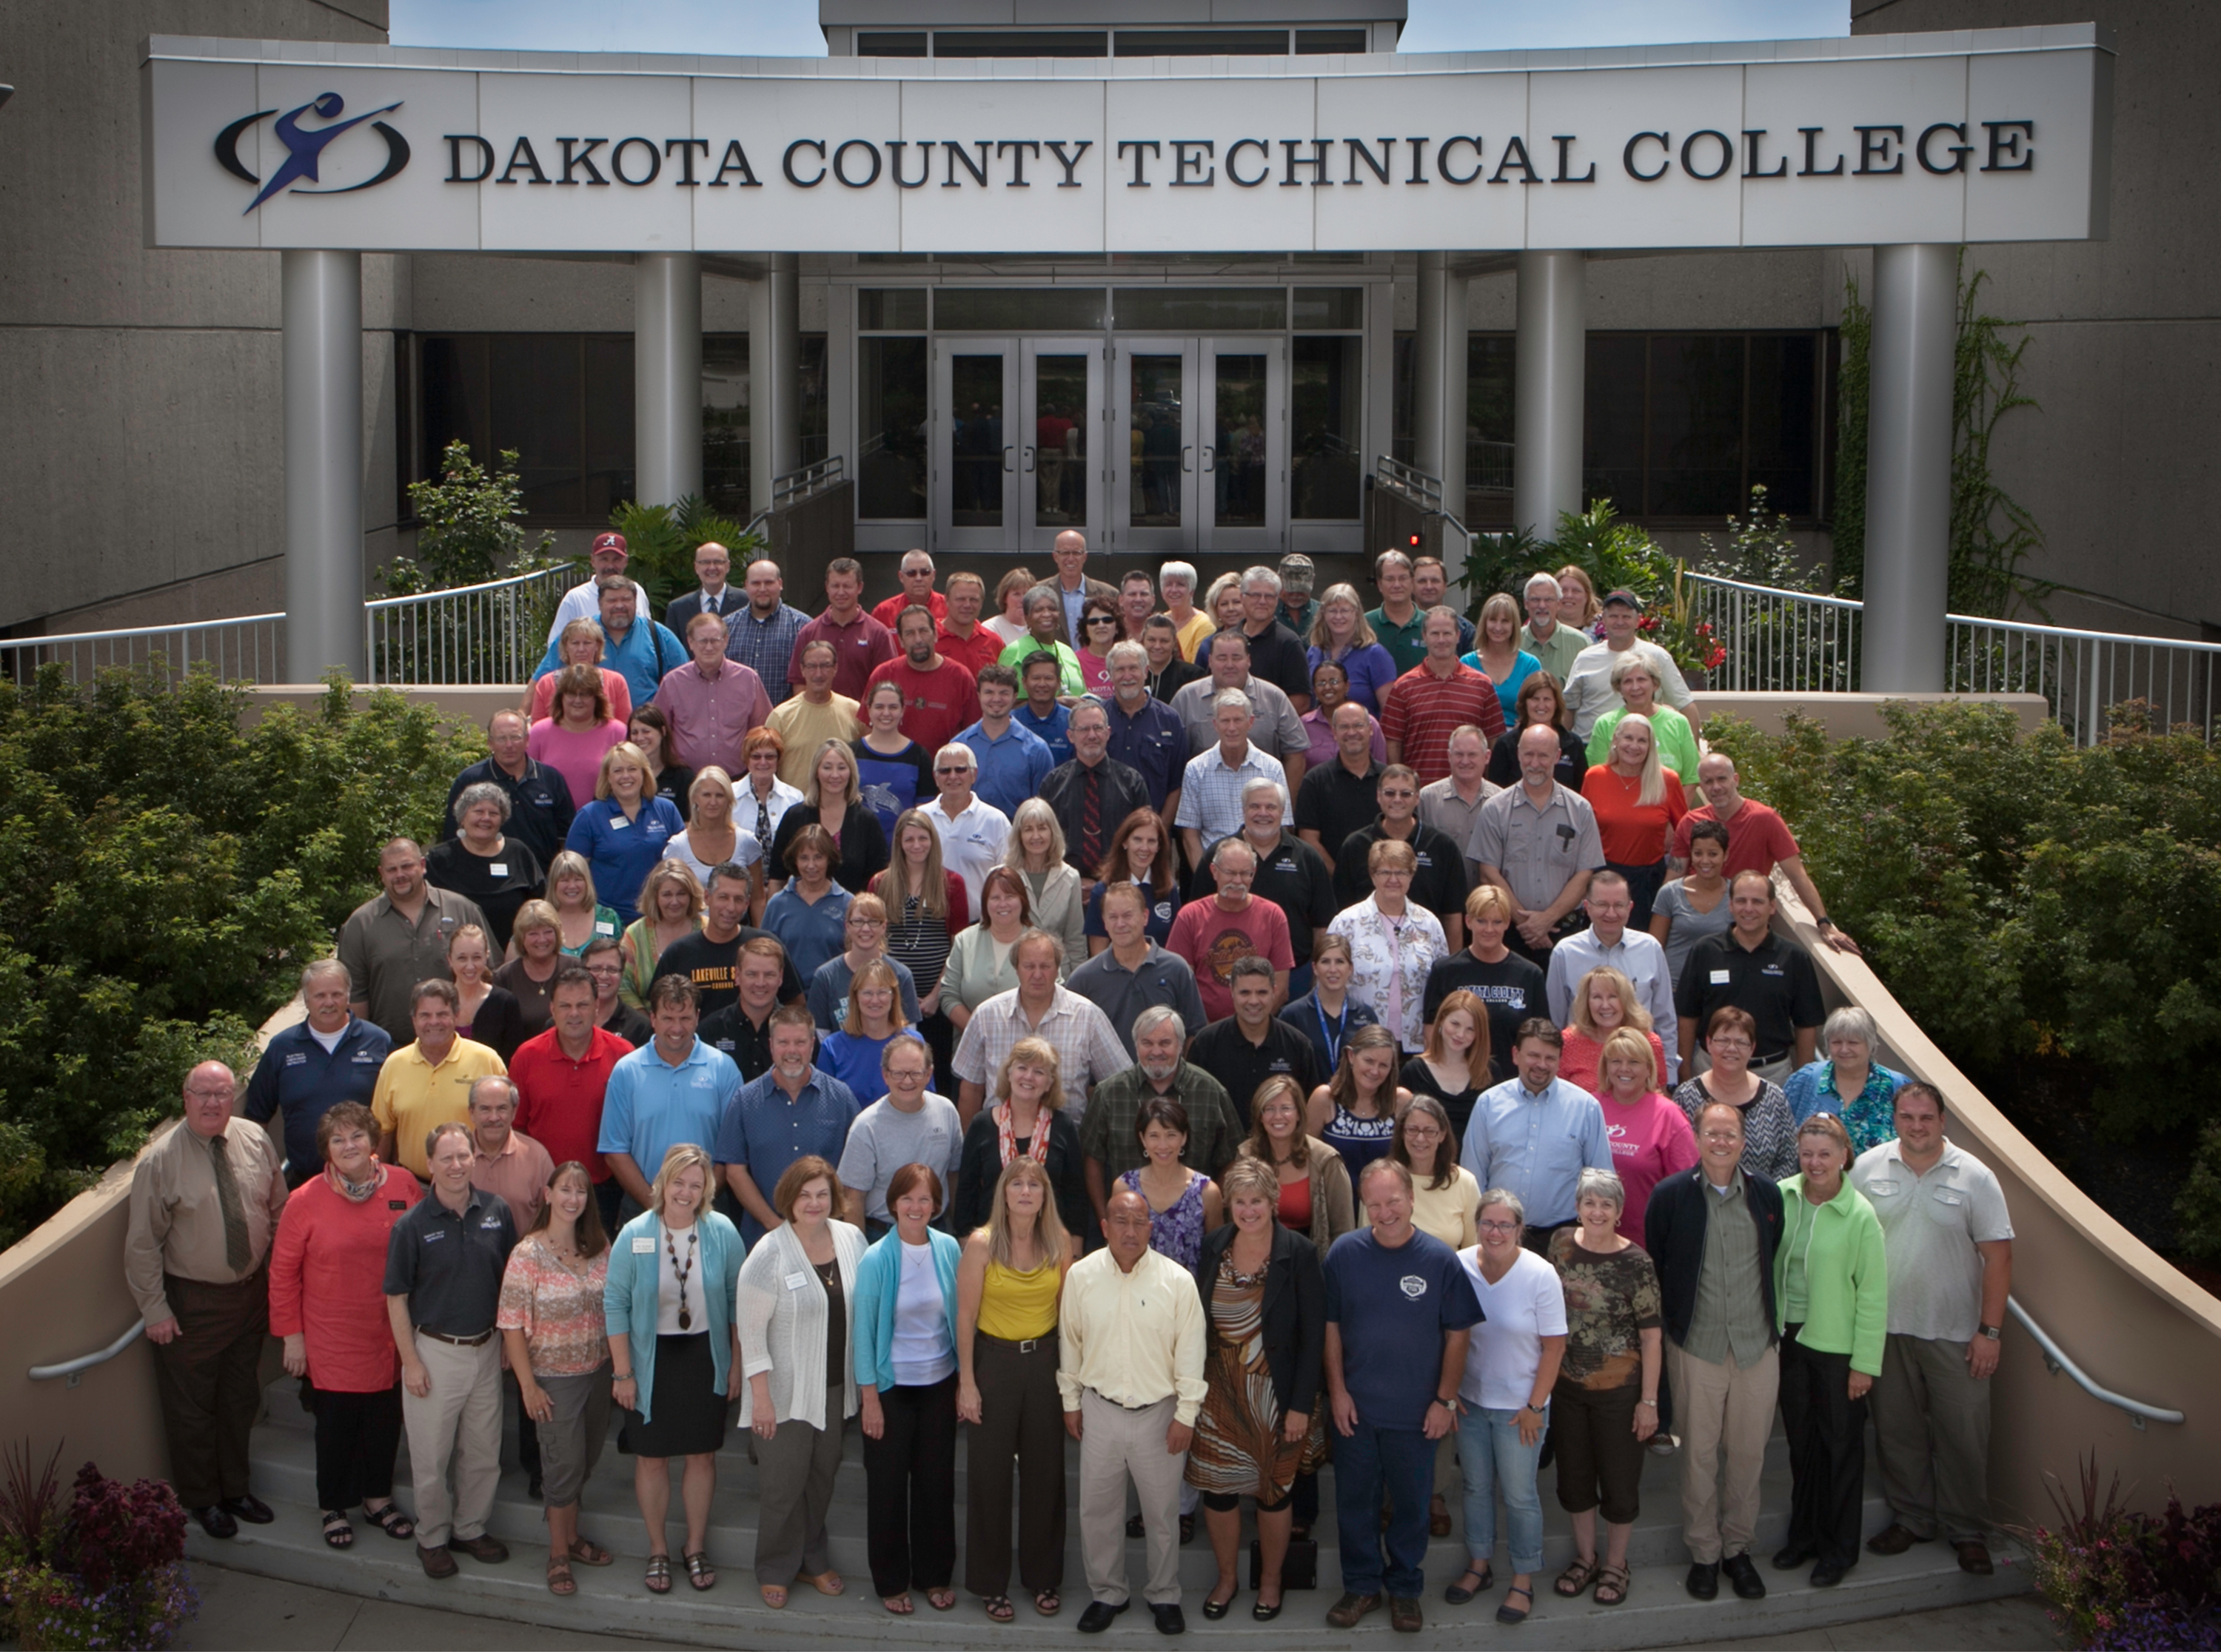 Faculty and Staff at DCTC